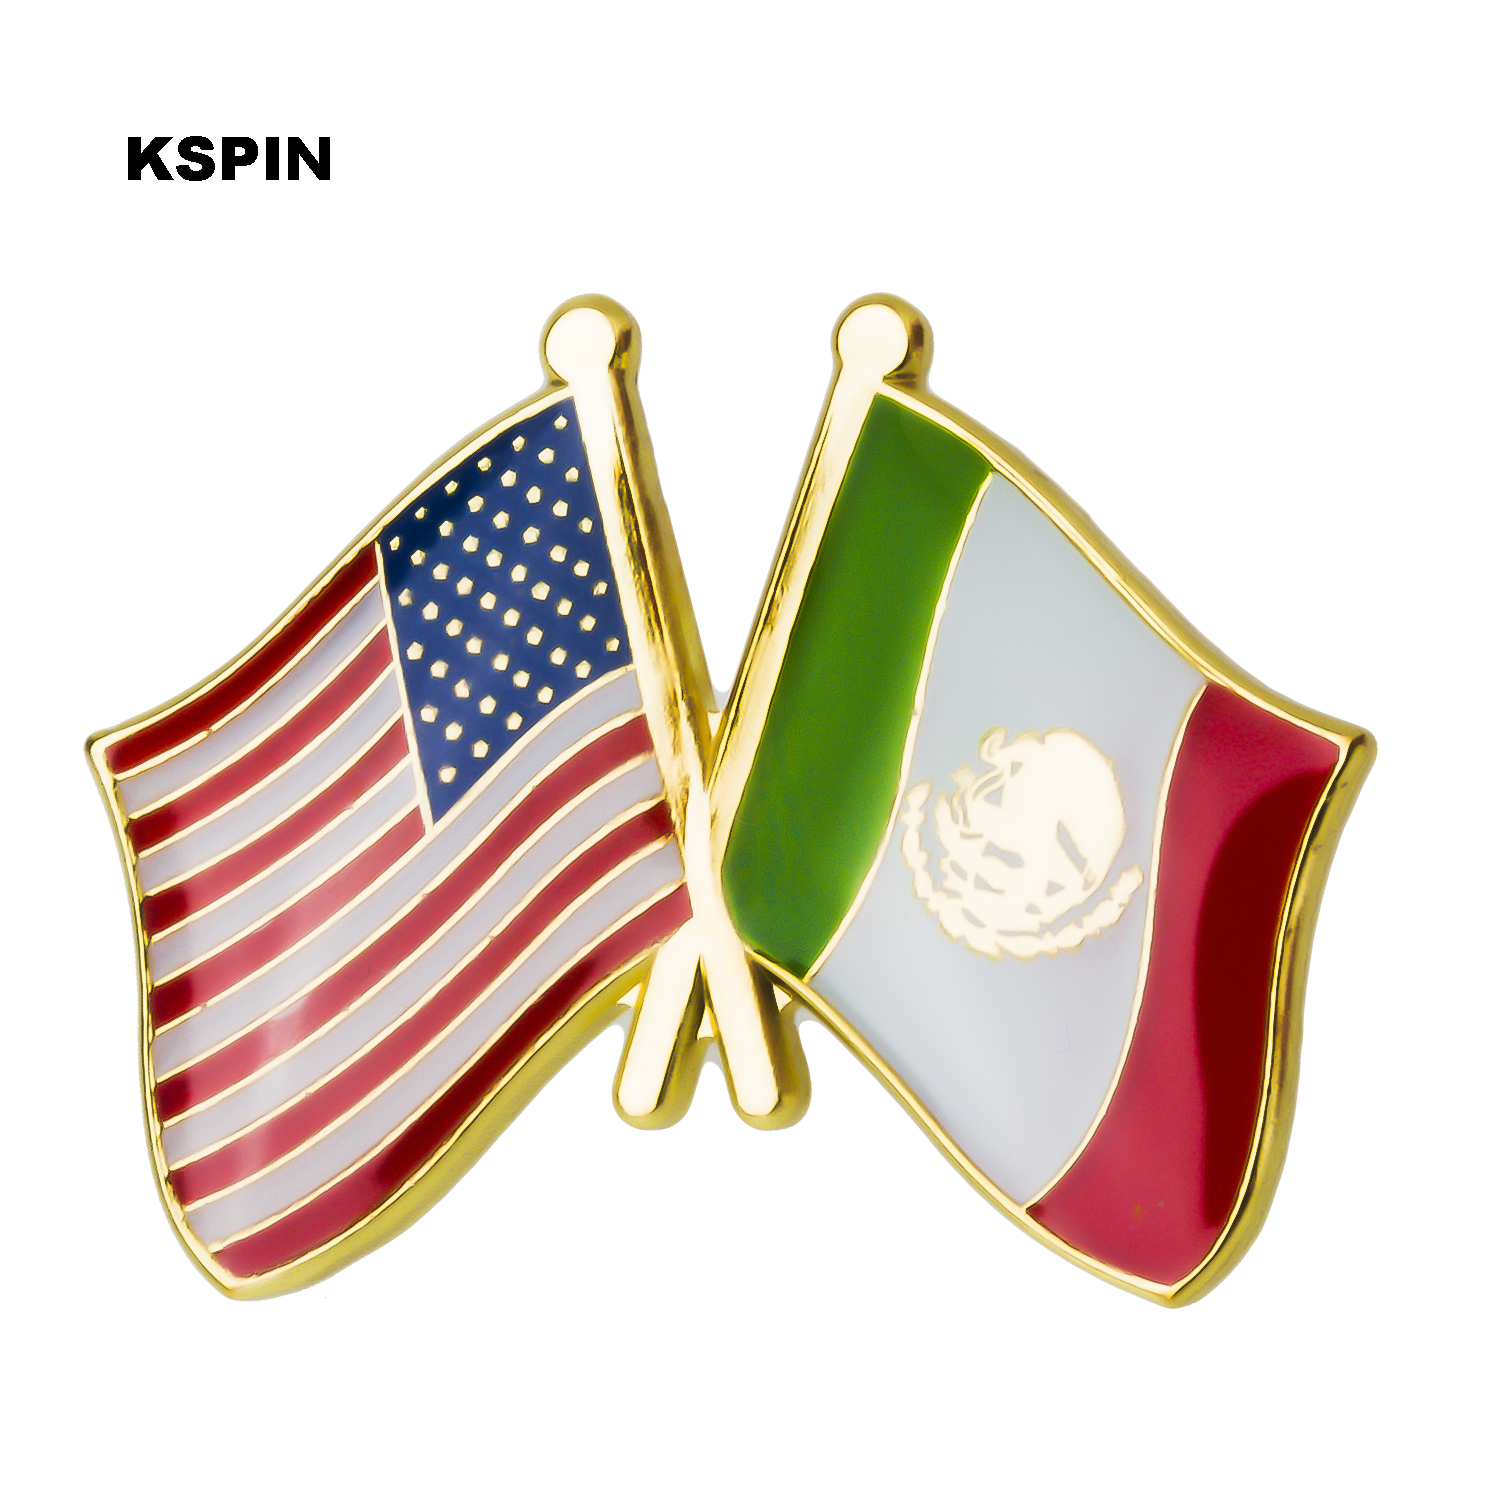 Badges Apparel Sewing & Fabric U.s.a South Africa Friendship Flag Metal Pin Badges For Clothes In Badges Button On Brooch Plating Brooches For Jewelry